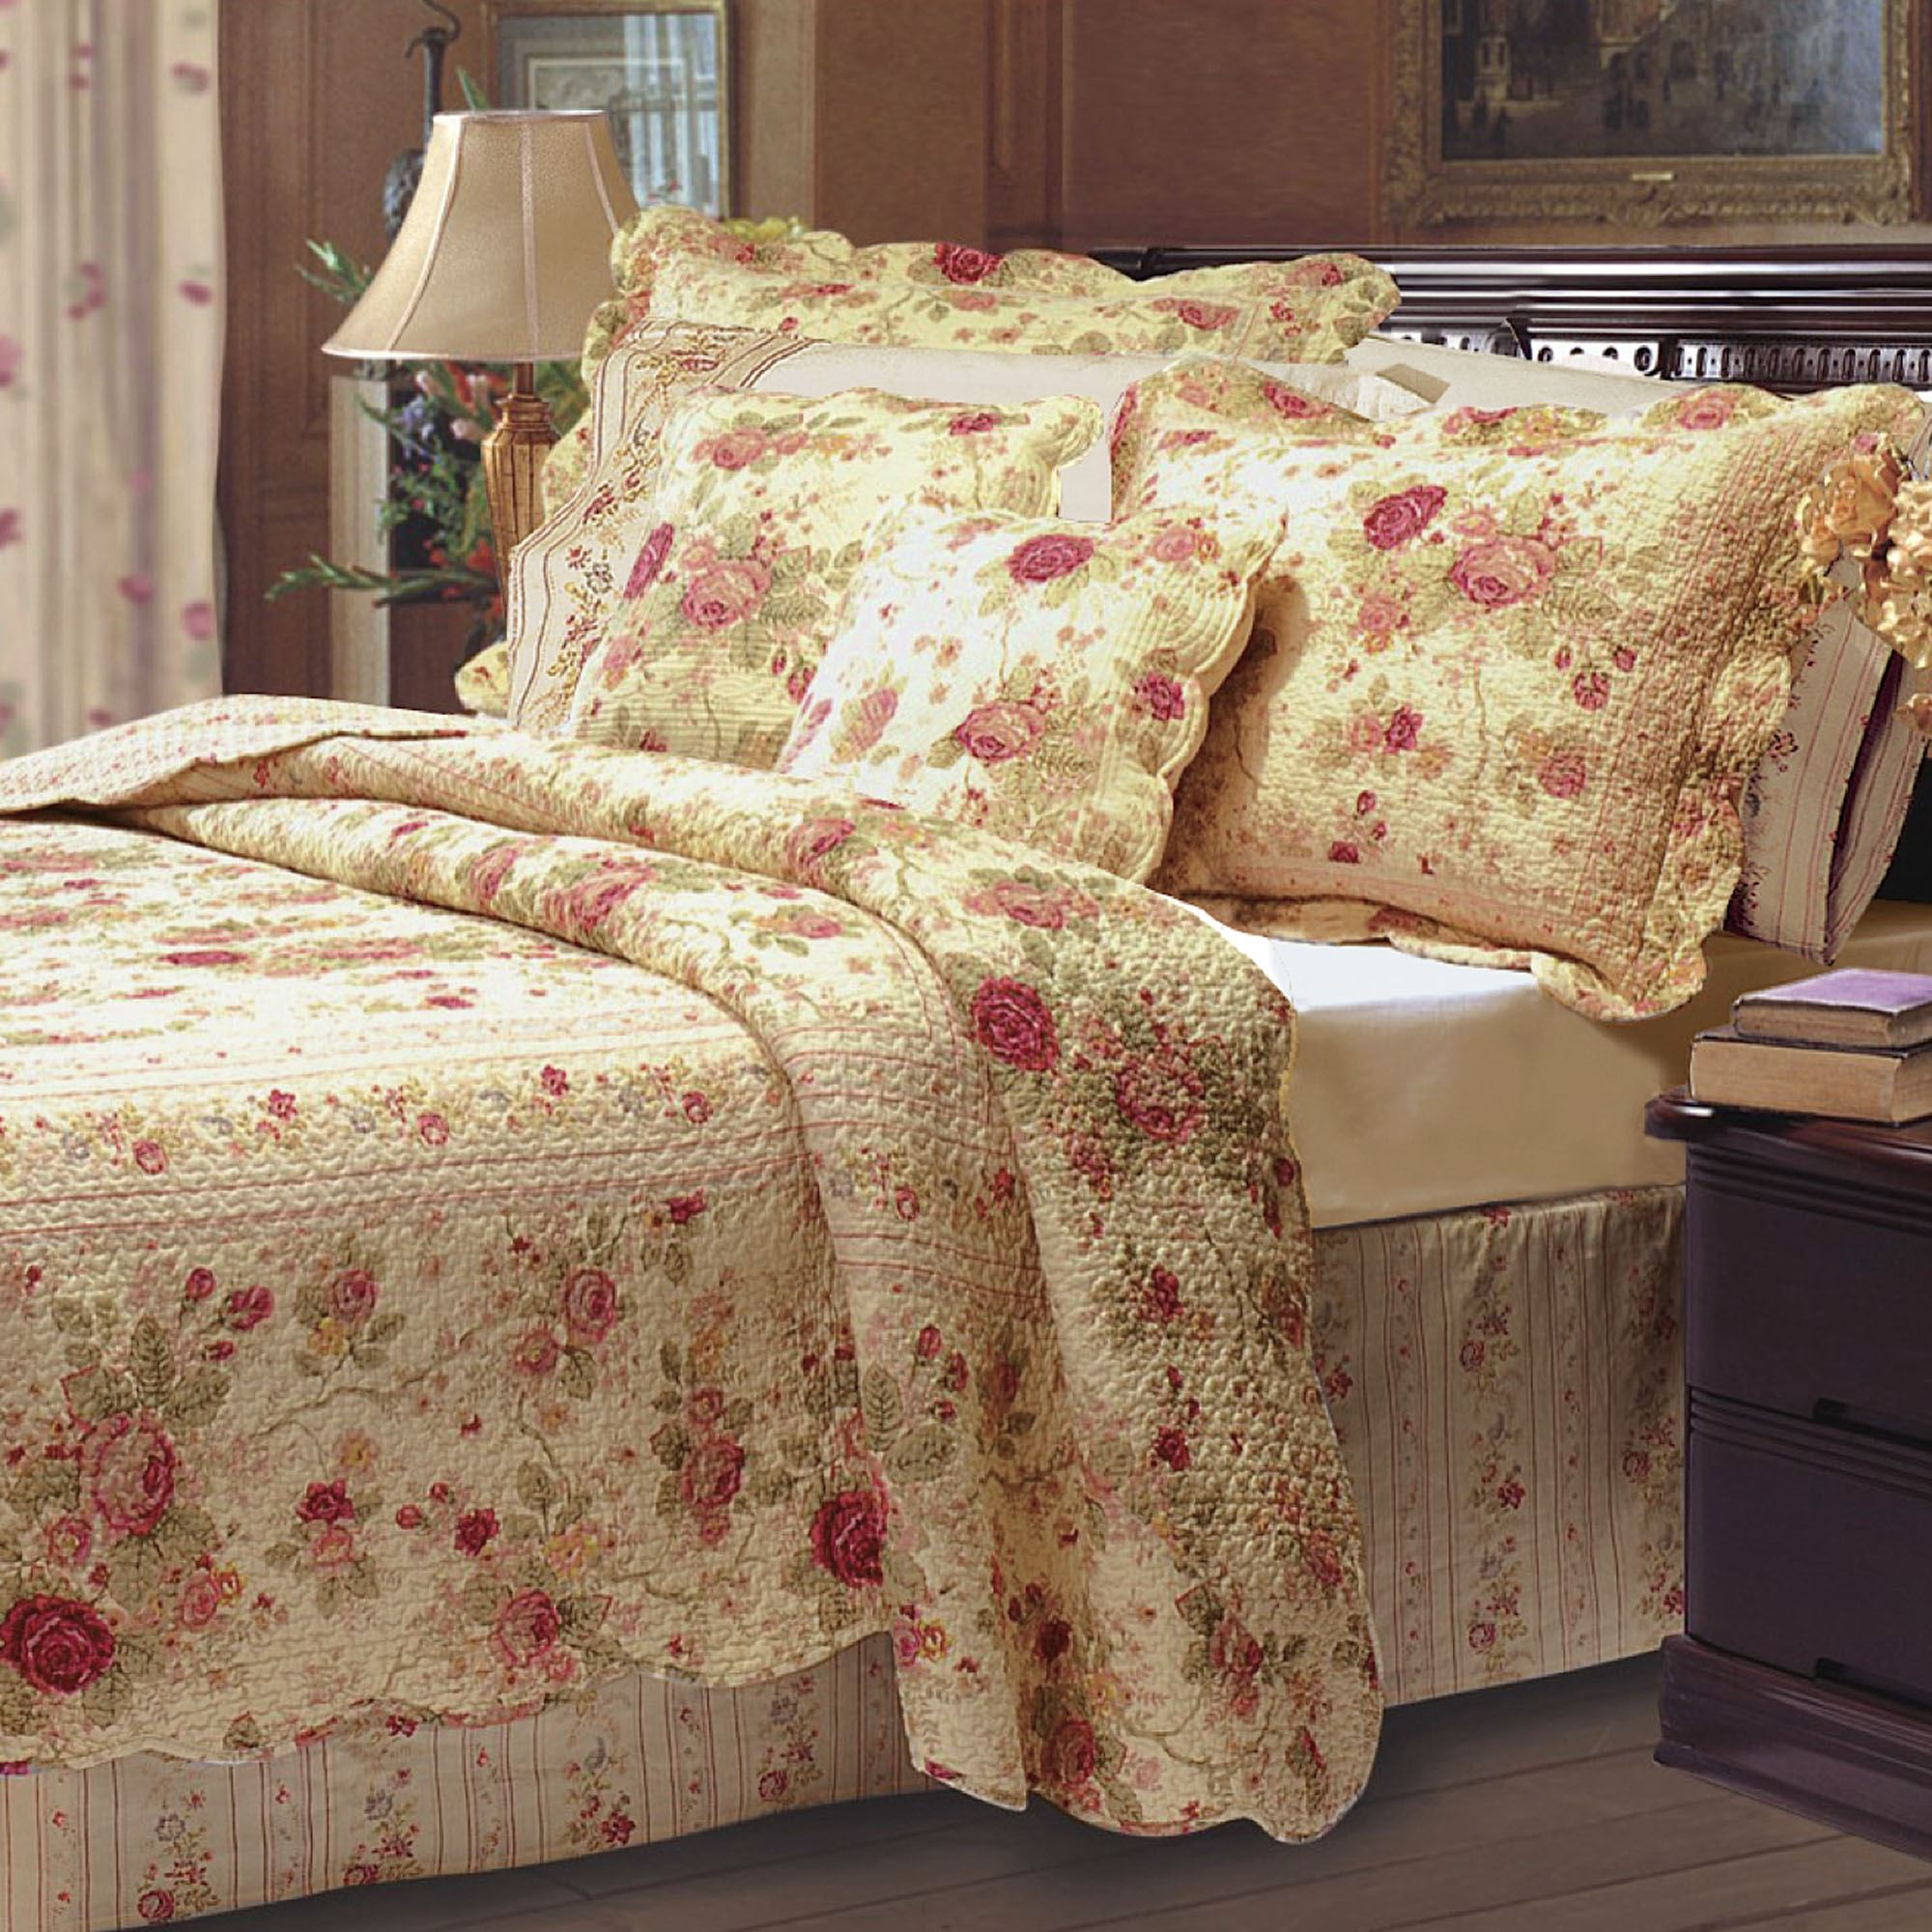 Overview. The Cotton Antique Rose Floral Quilt Bedding ...